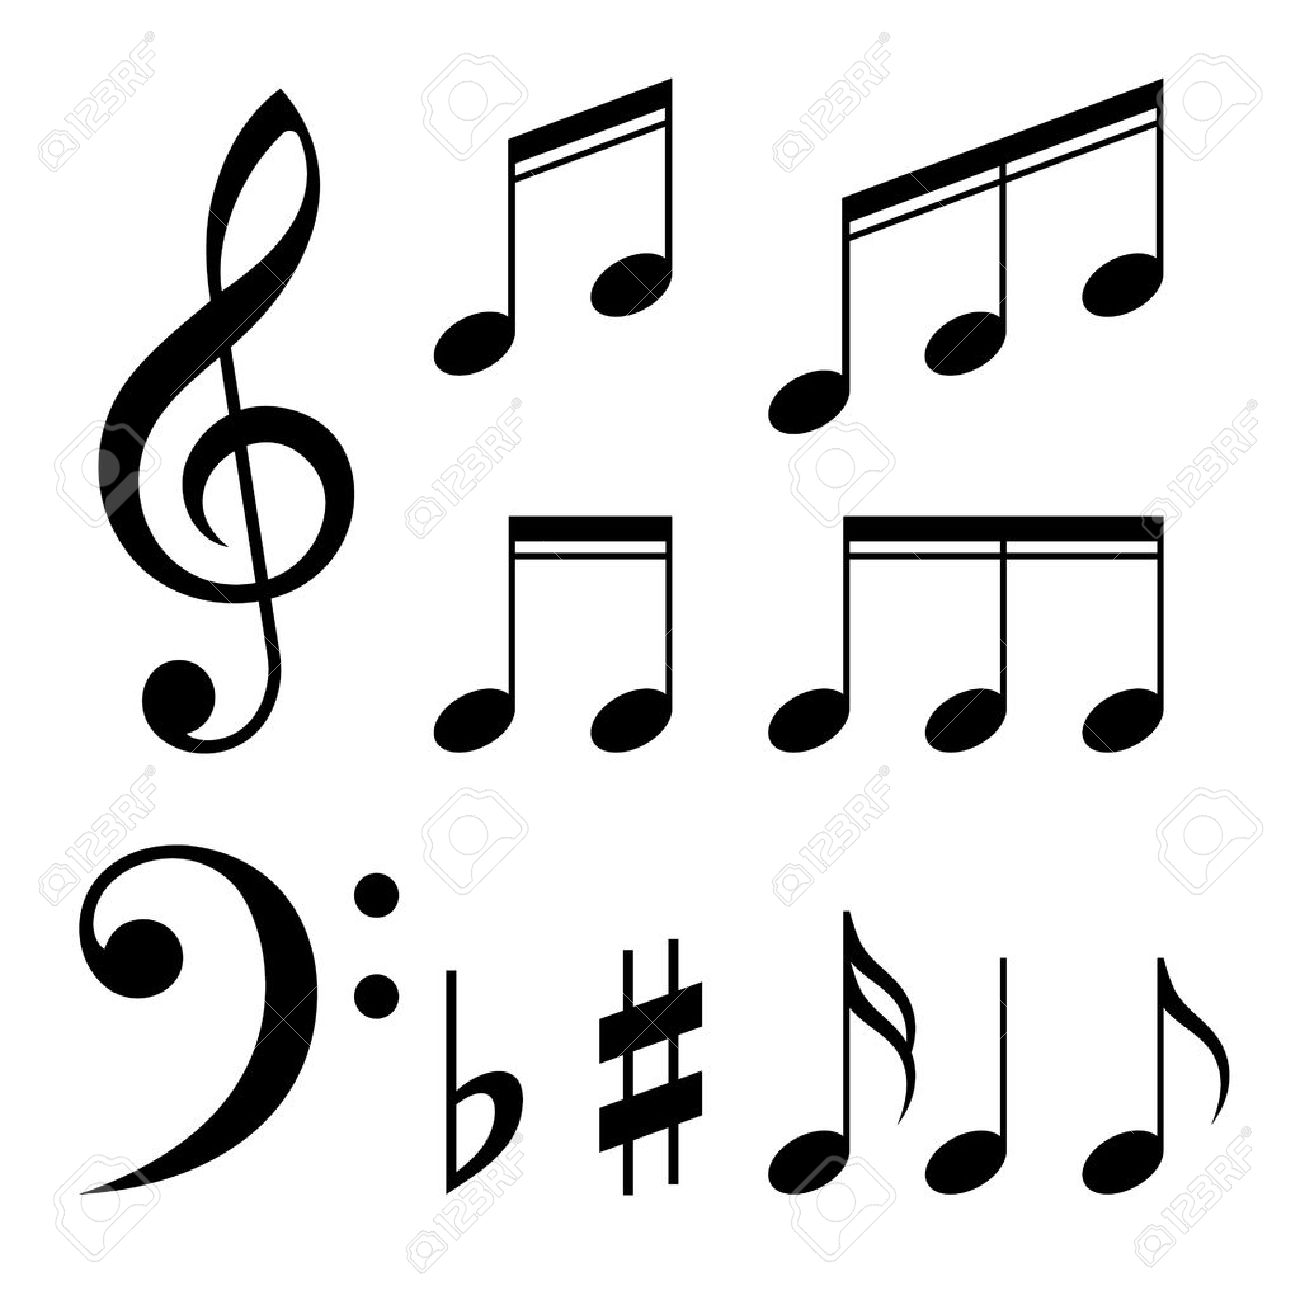 Musical notes staff background on white vector by tassel78 image - Musical Note Set Of Music Notes Vector Black And White Silhouettes